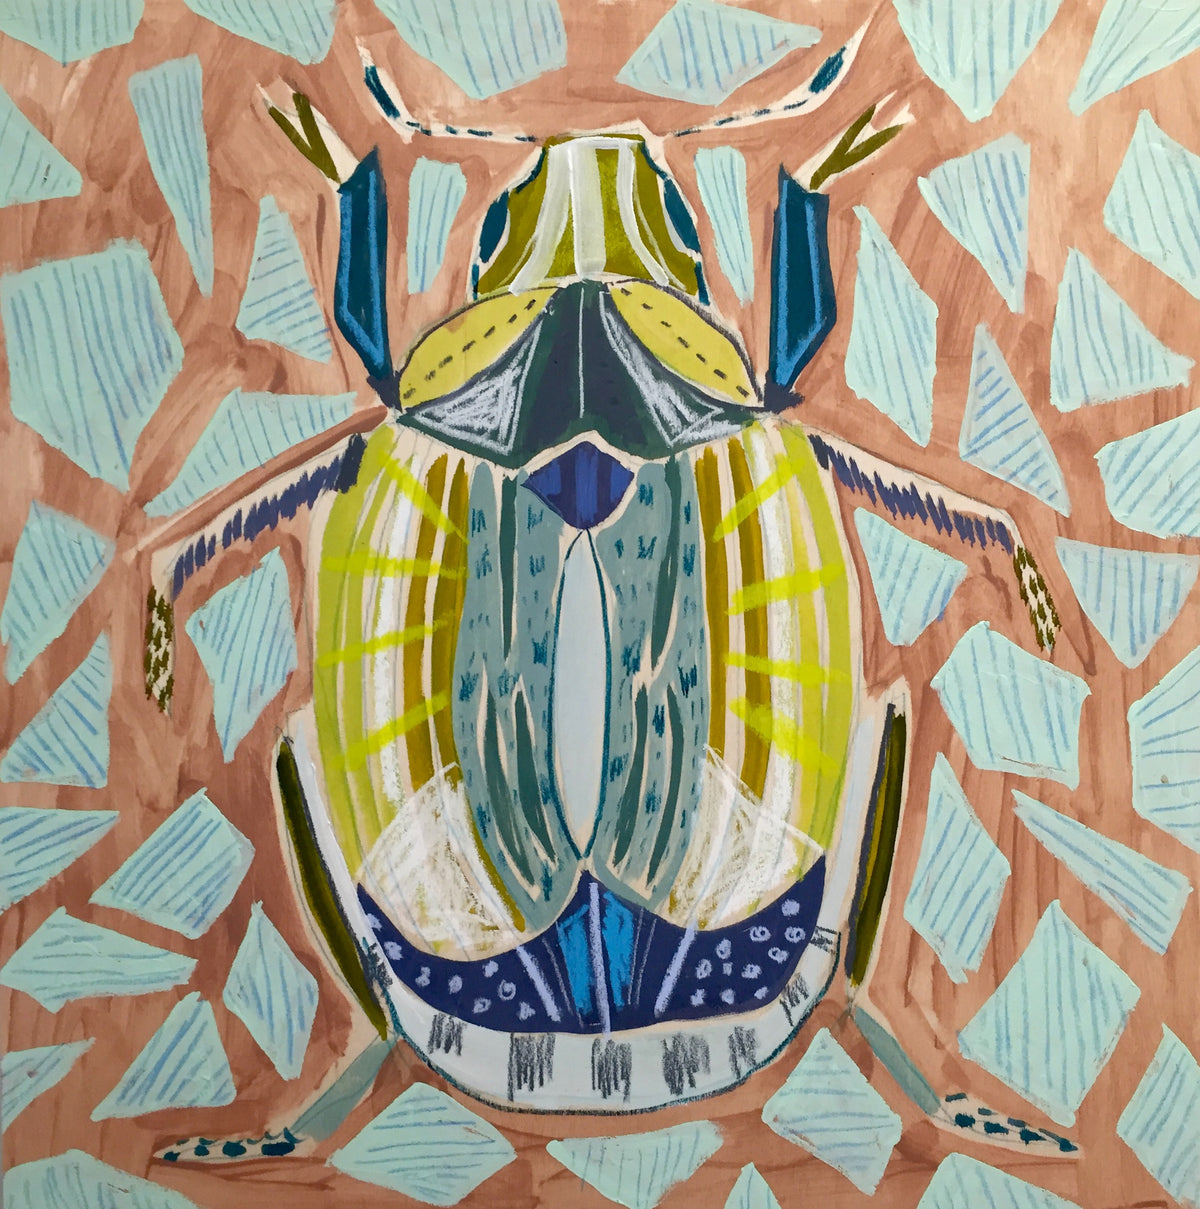 18X18 - FRANK THE BEETLE